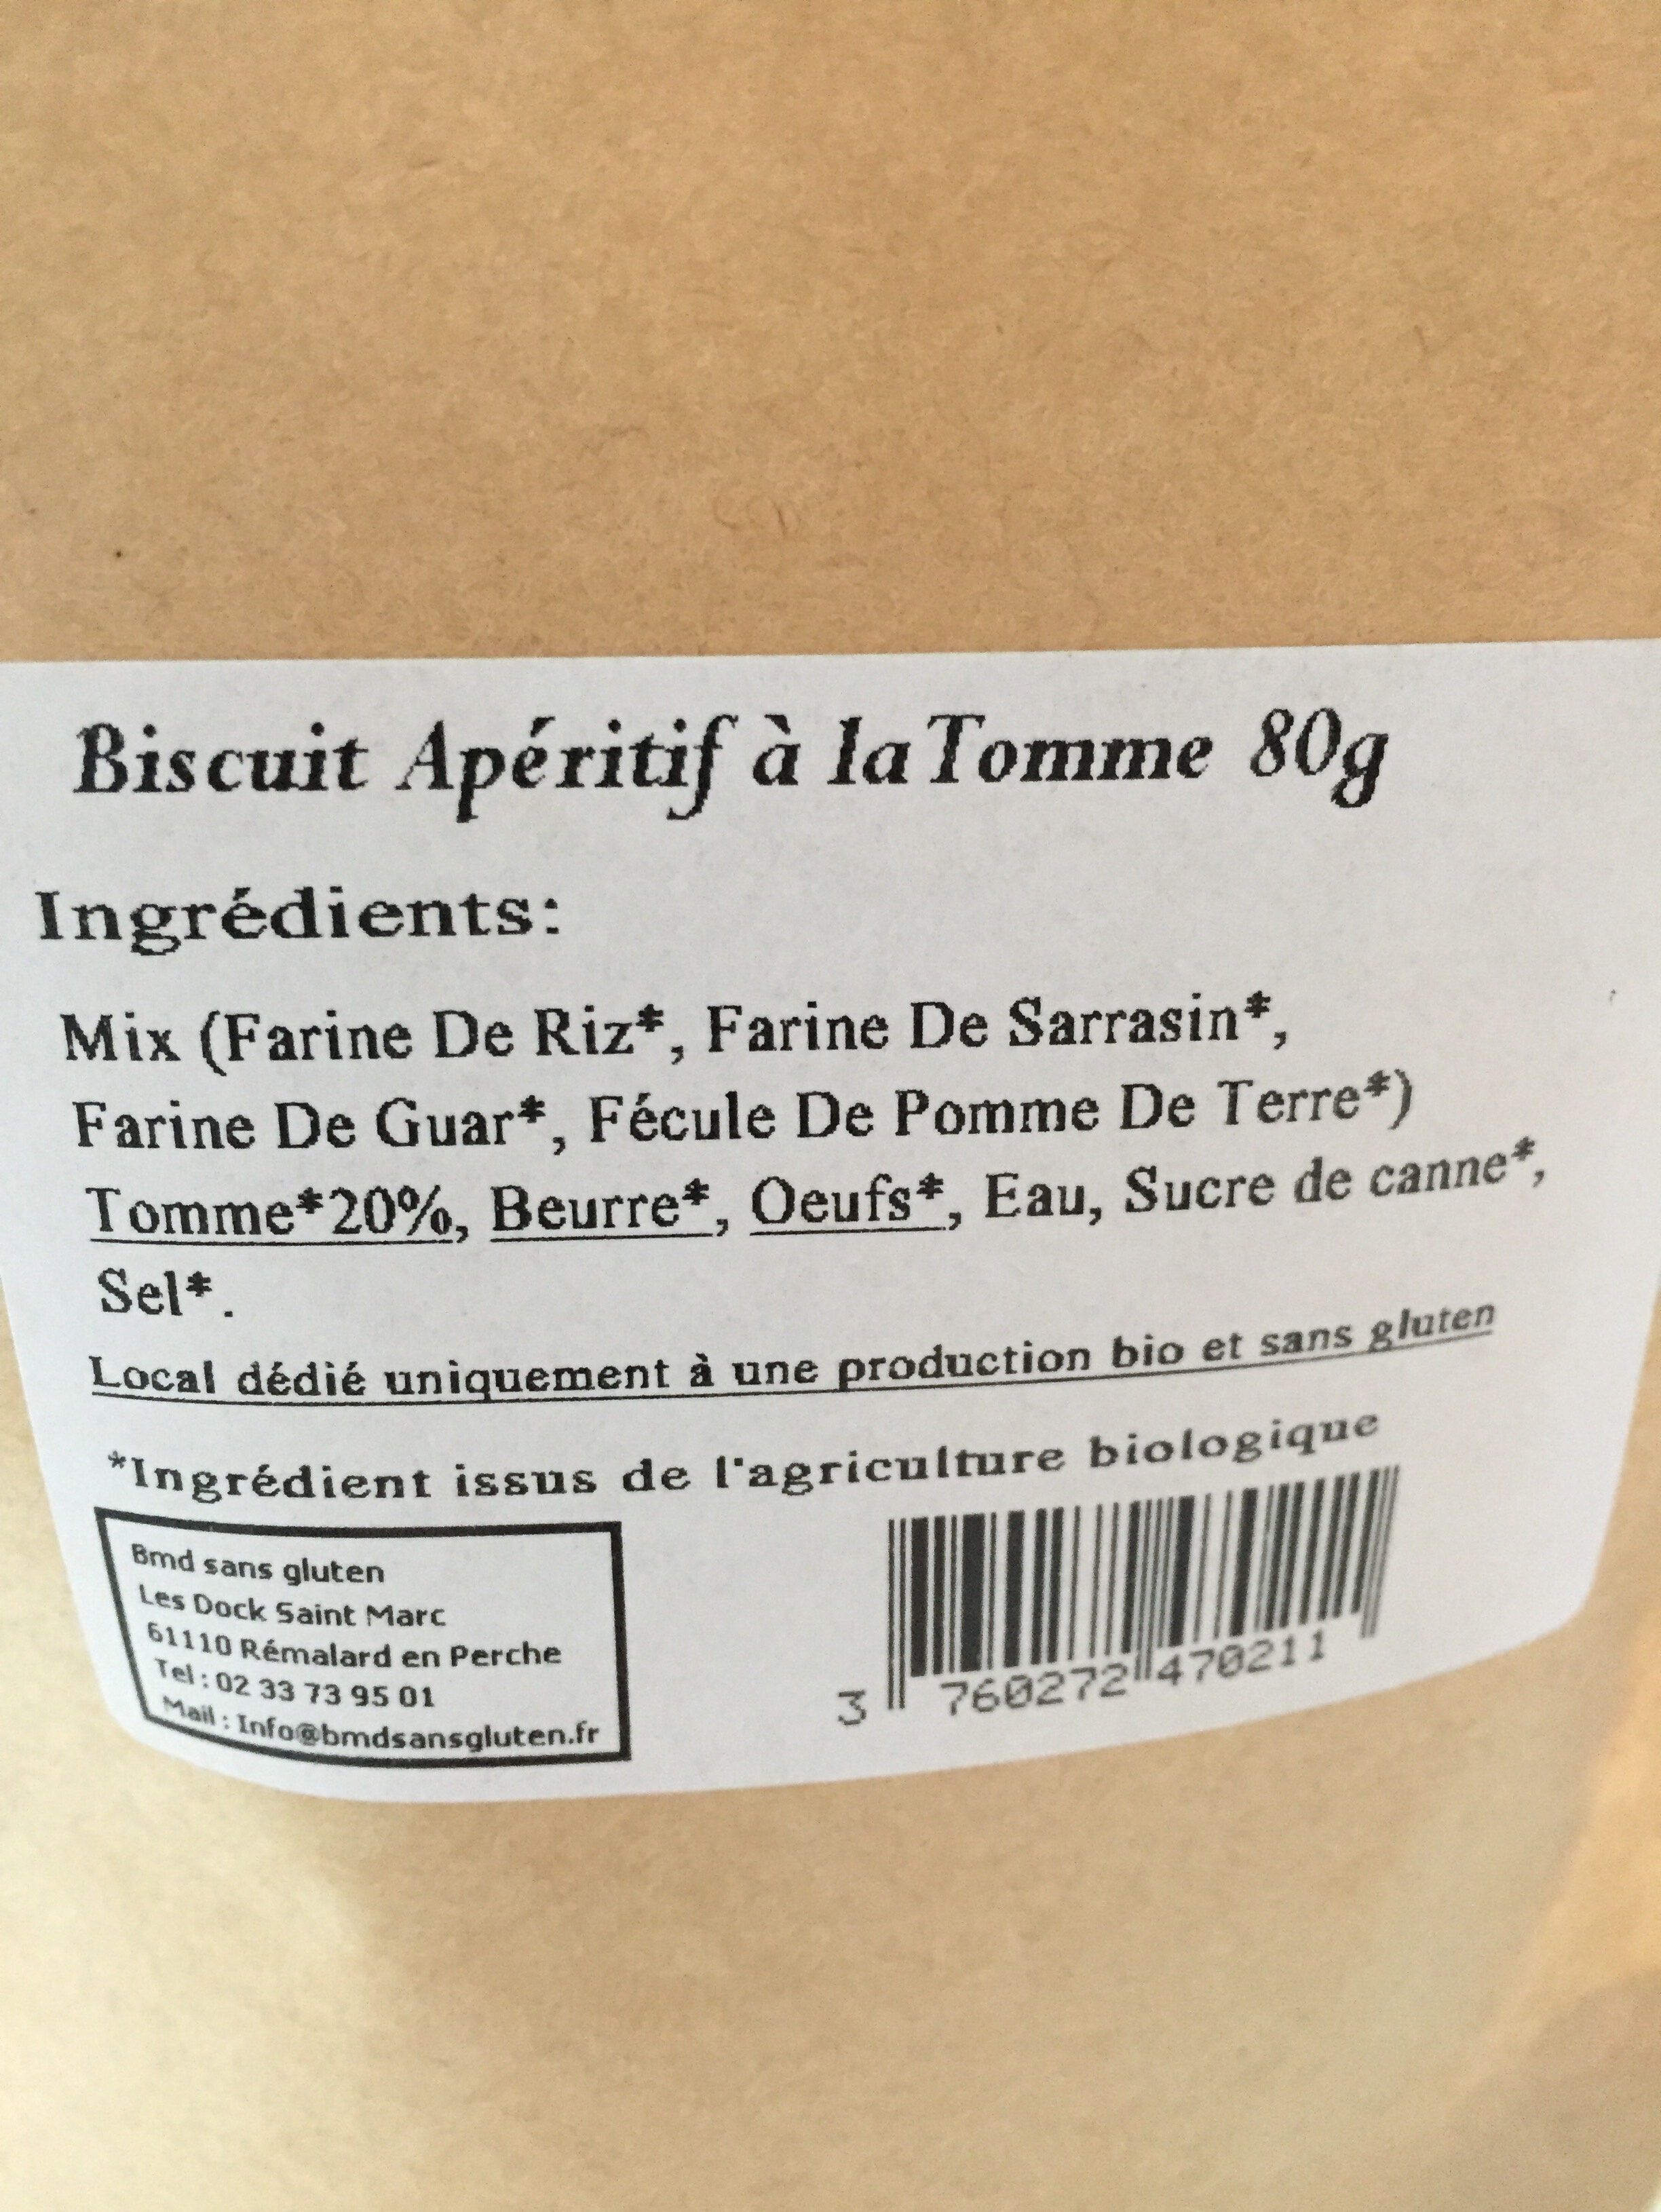 Biscuit apéritif Artisanal A la Tomme - Ingredients